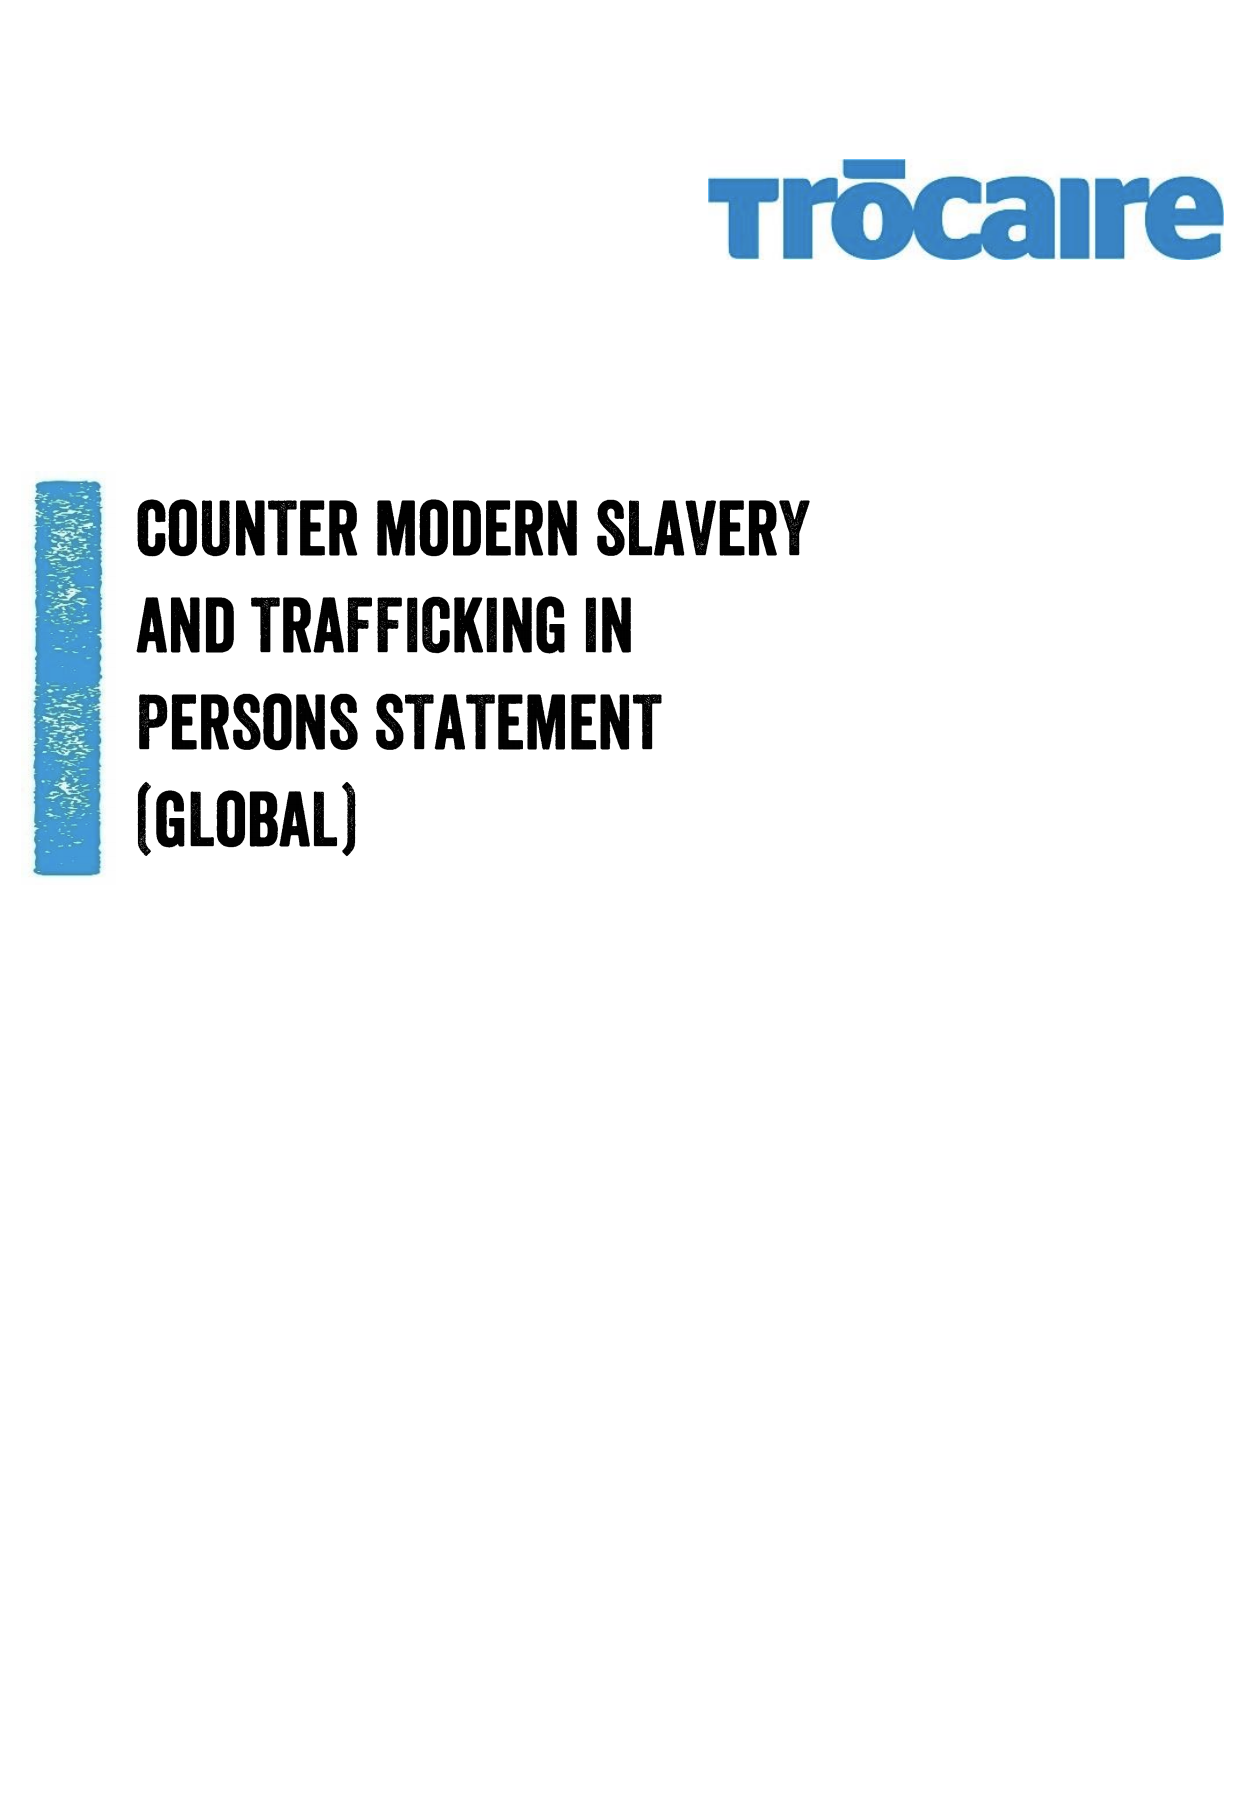 Counter Modern Slavery & Traffic in Person Statement